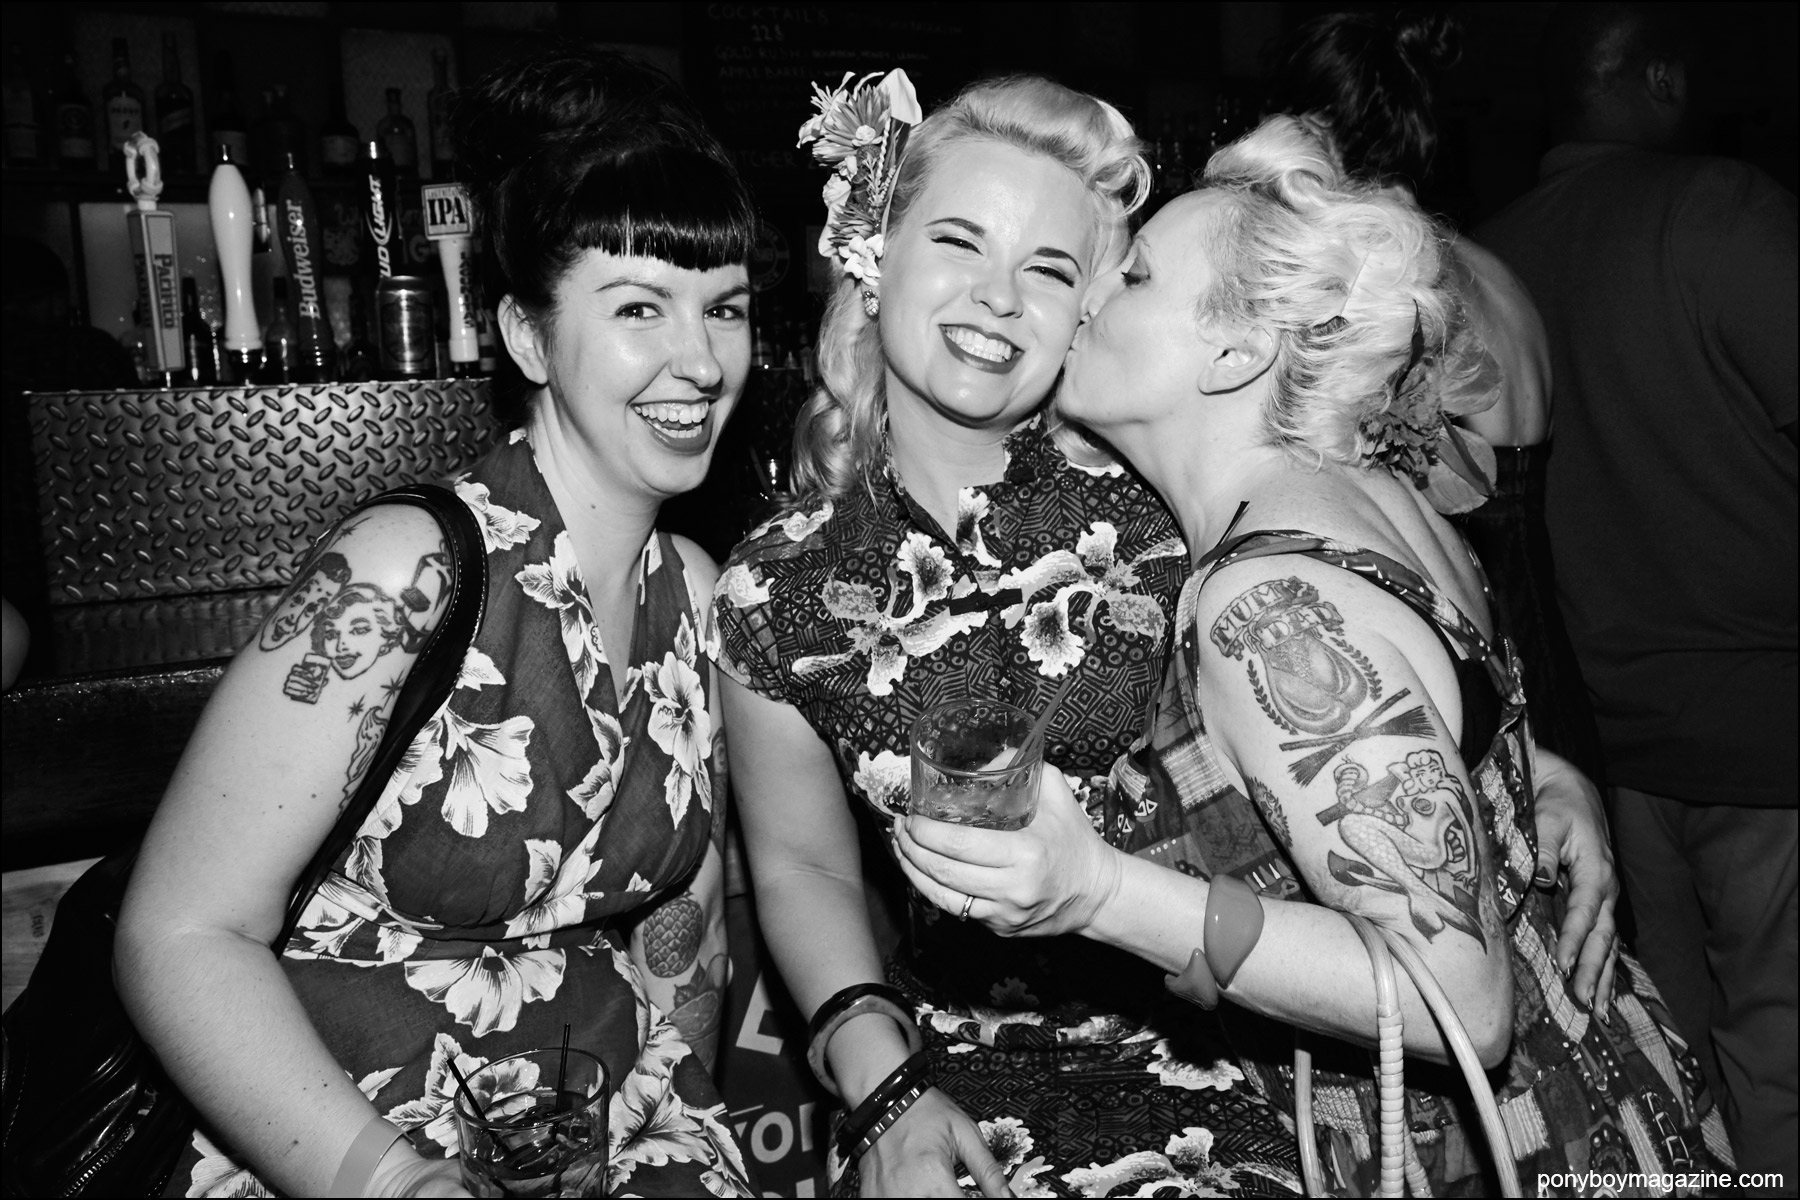 Rockabilly women in Hawaiian print dresses, photographed at Hula Rock Vol 2 in New York City. Photograph by Alexander Thompson for Ponyboy magazine NY.